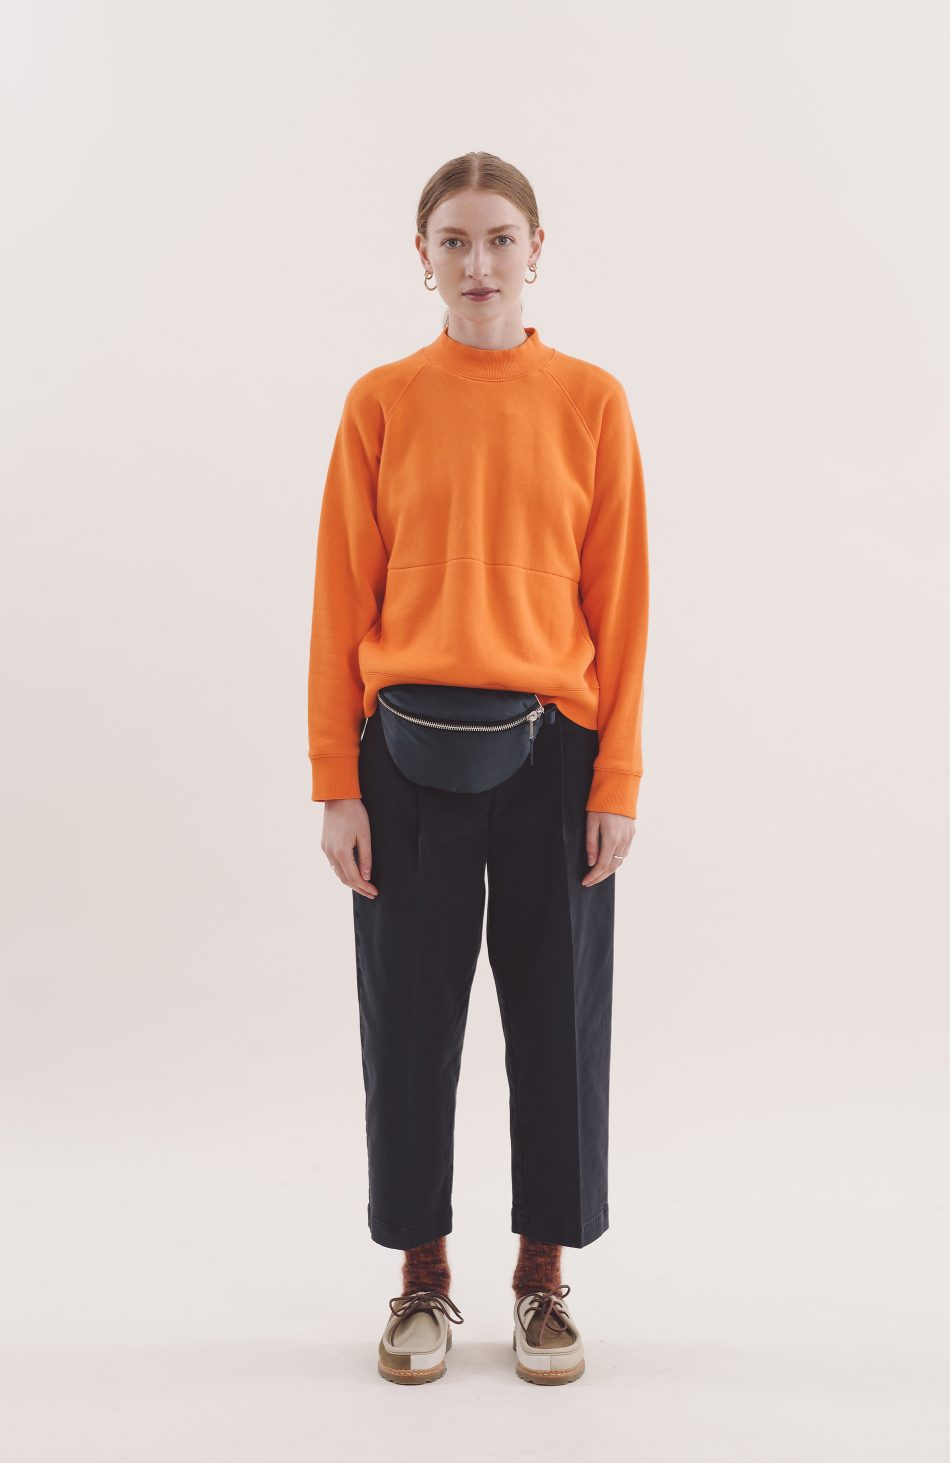 Touche Pocket Sweatshirt in Orange